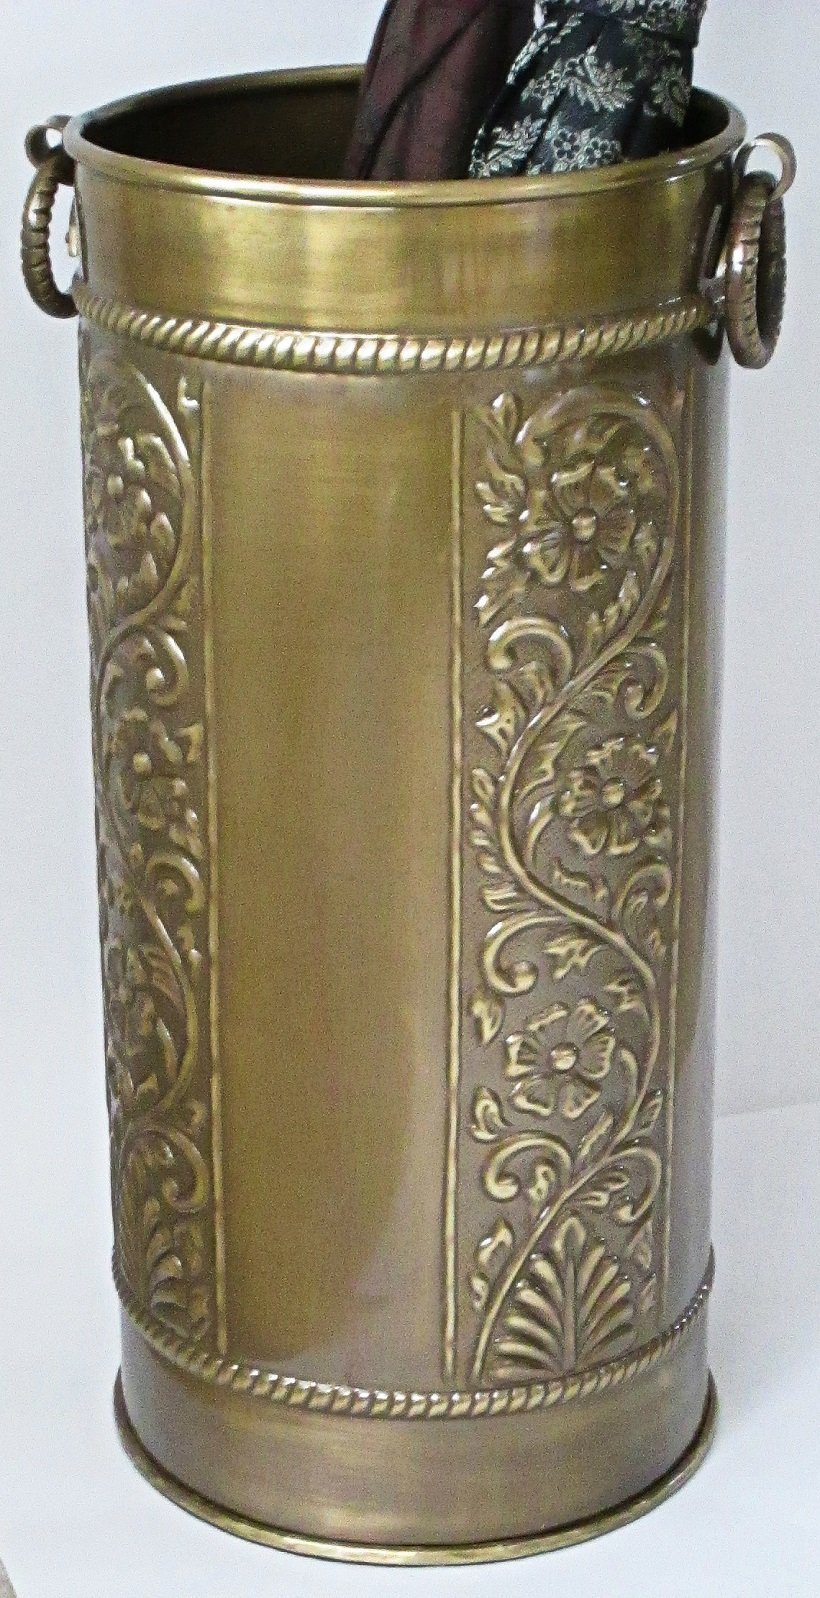 Solid Brass Umbrella Stand Scrollwork Design by Excellent Accents